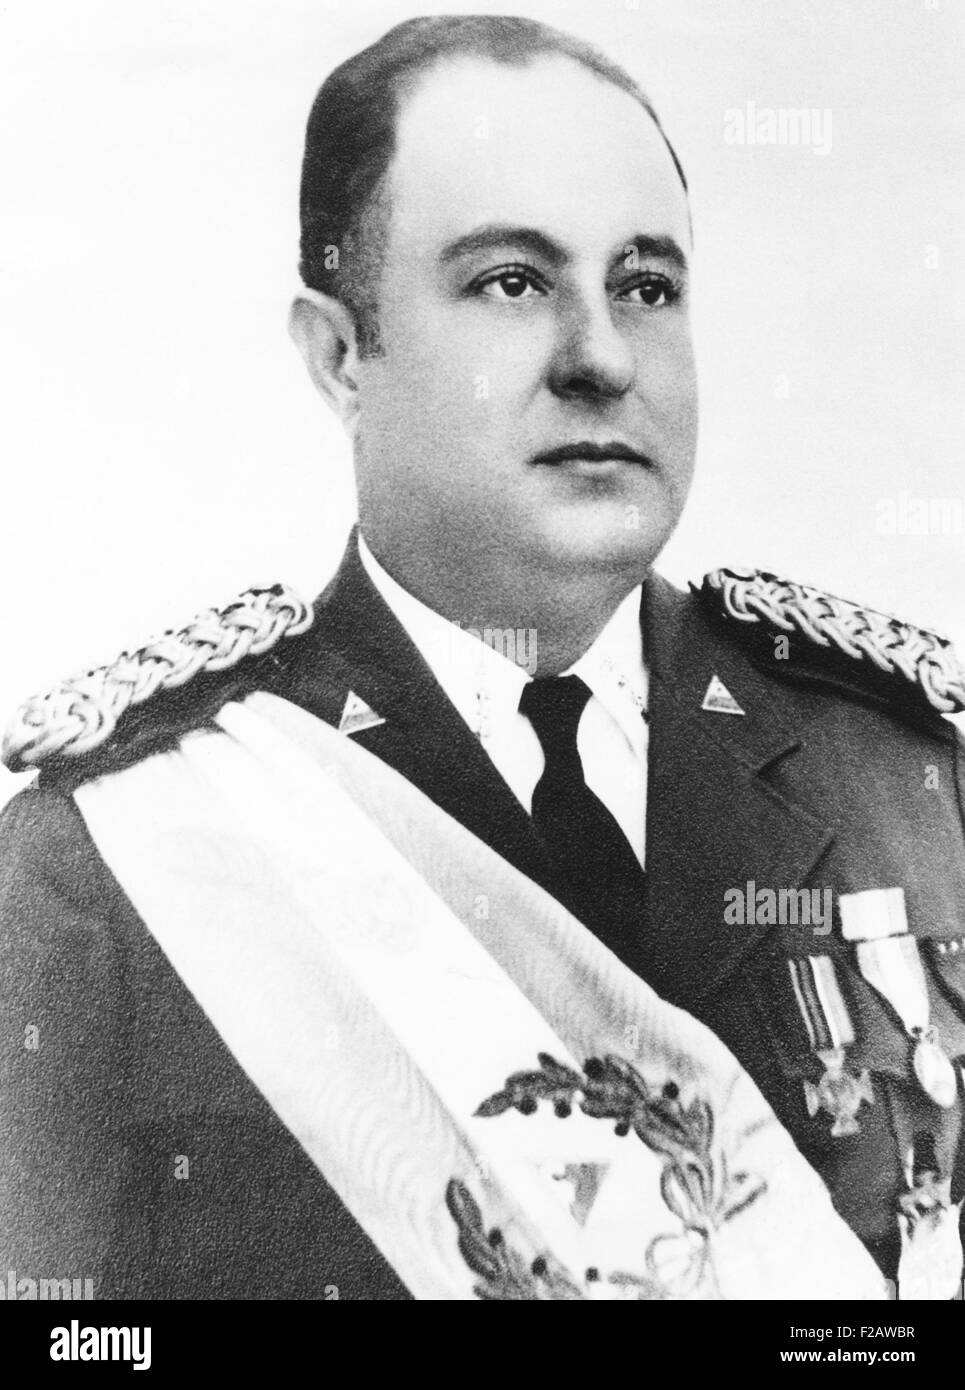 President Anastasia Somoza of Nicaragua in his Presidential regalia in 1939. When the U.S. Marines disengaged from - Stock Image